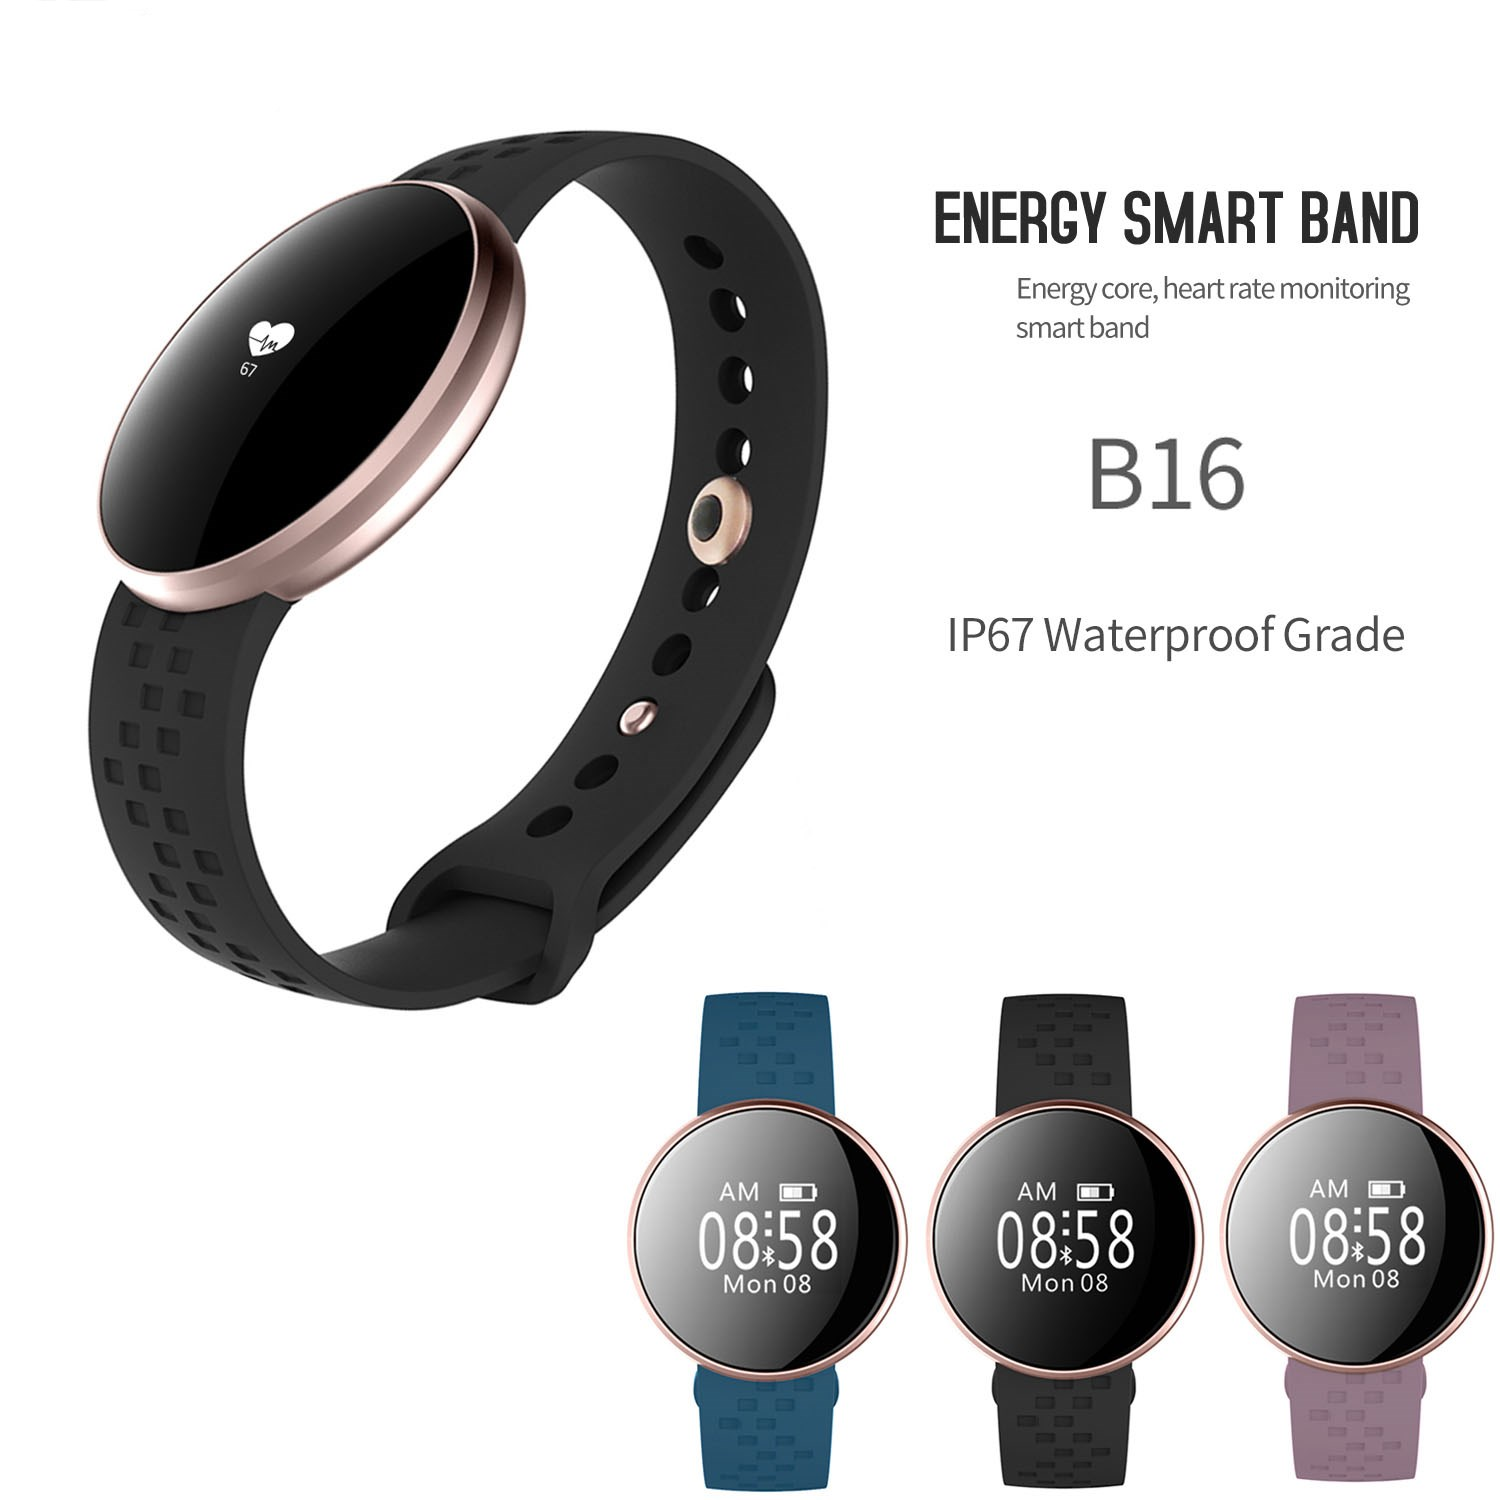 New Fashion Women Smartwatch Smart Watch for IOS Android with Fitness Sleep Monitoring Waterproof Remote Camera Relogio FemininoNew Fashion Women Smartwatch Smart Watch for IOS Android with Fitness Sleep Monitoring Waterproof Remote Camera Relogio Feminino